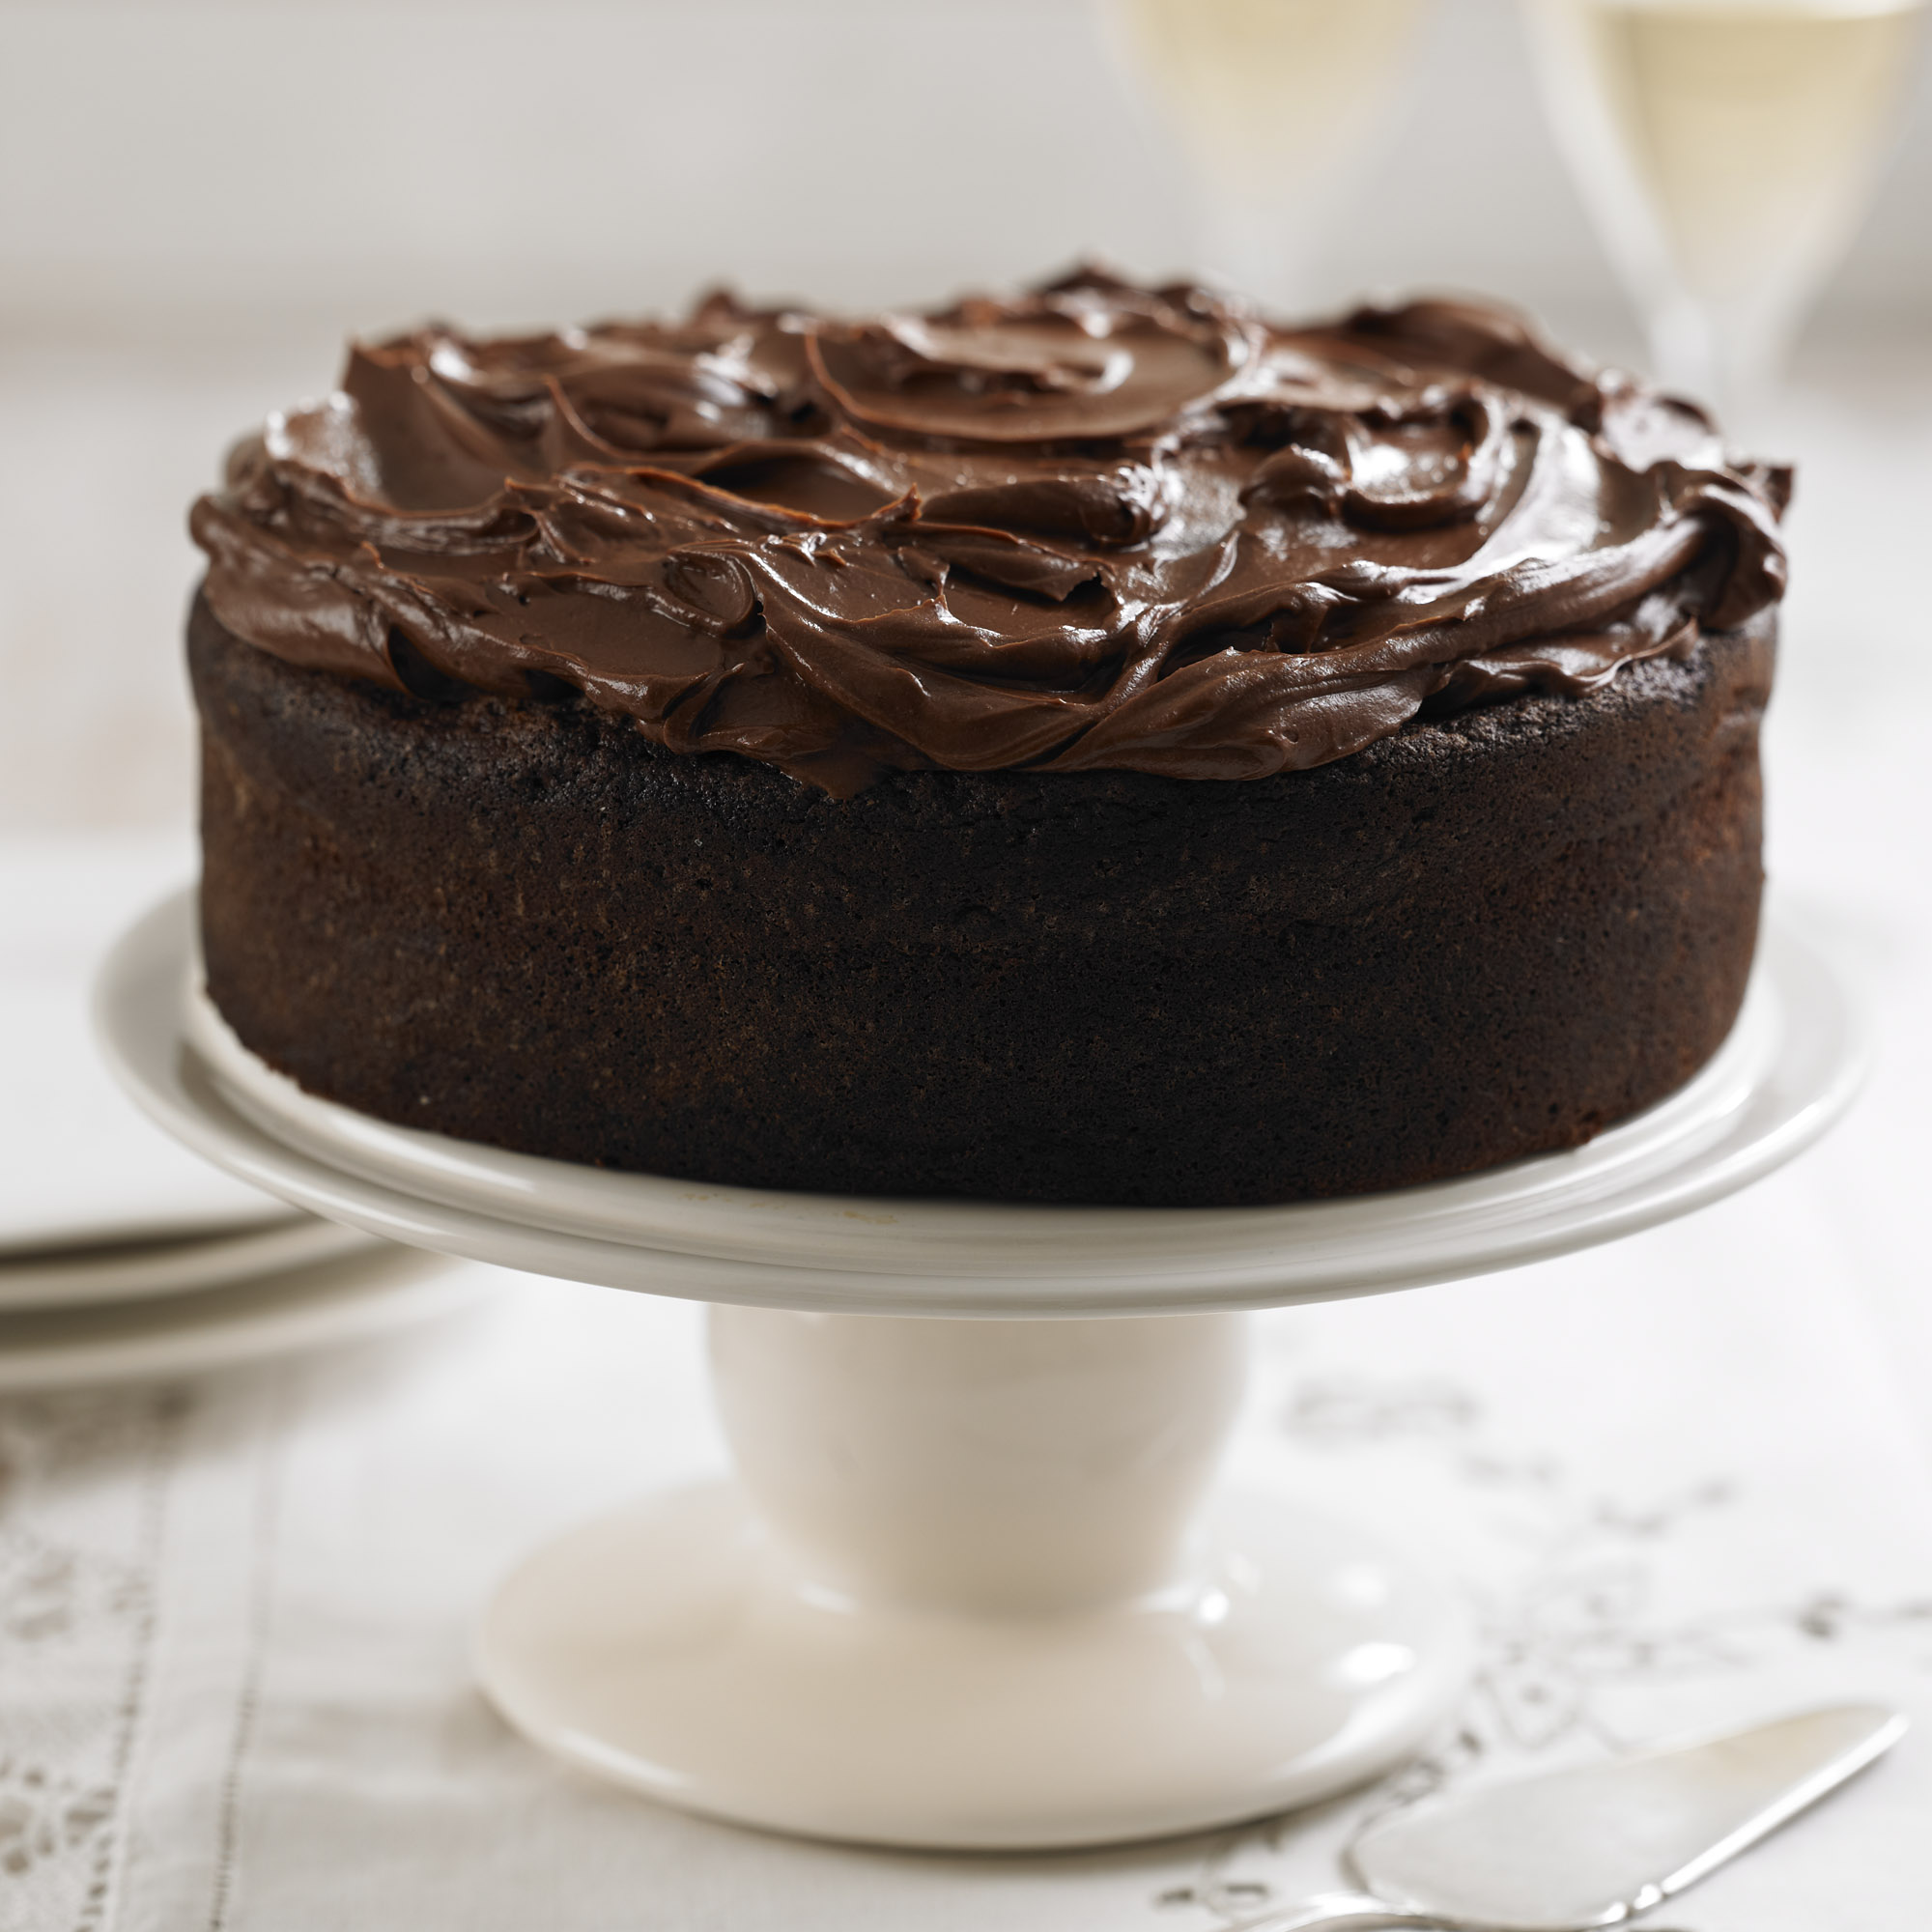 Super Moist Chocolate Cake Recipe Uk